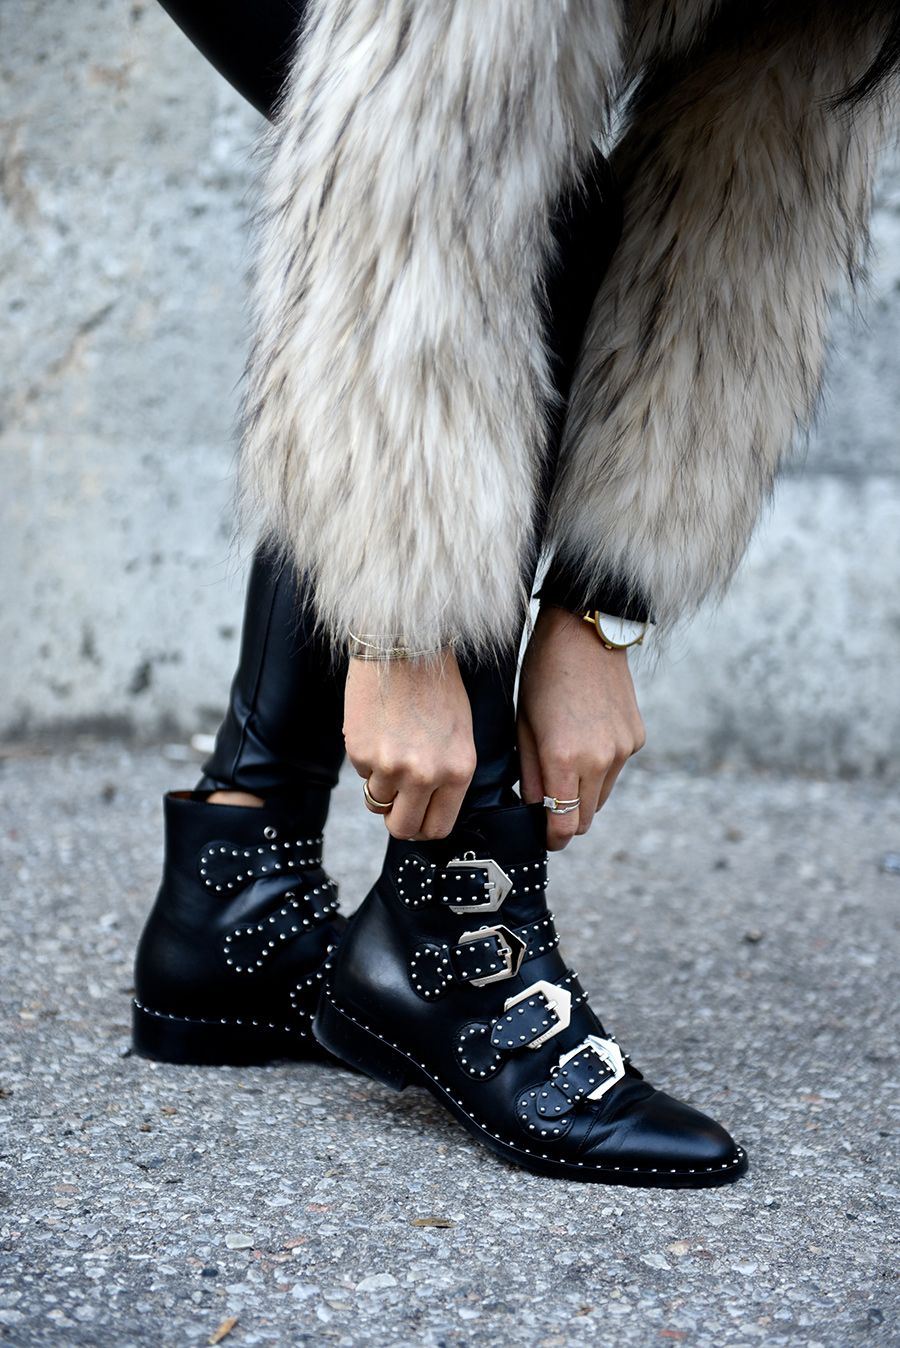 Rock  n  Roll Style ✯ Givenchy Embellished Leather Boots   Not Your Standard f882099a08